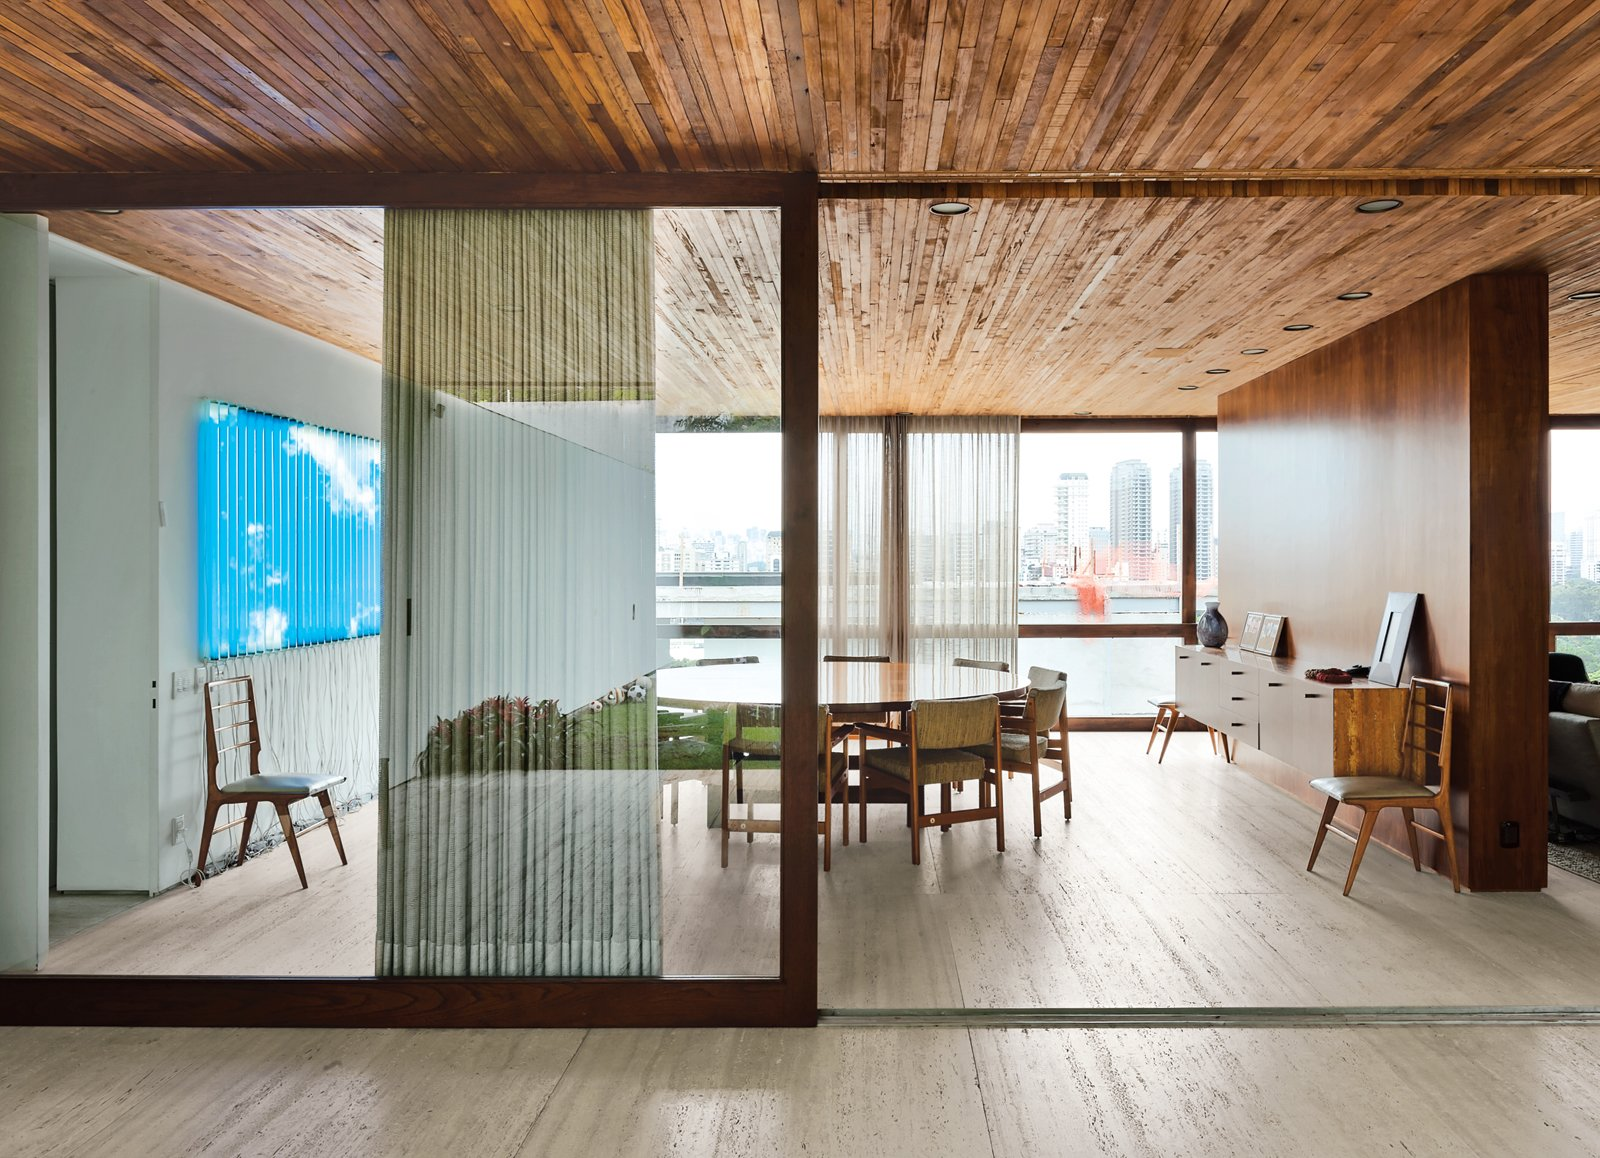 A wooden partition separates the dining room from the living room. The jacaranda table is a vintage find designed by Jorge Zalszupin for L'Atelier. The dining chairs are by the Brazilian designer Sergio Rodrigues and architect Isay Weinfeld designed the sideboard. The fluorescent lamp sculpture on the wall is Luz Natural by Eduardo Coimbra. Tagged: Dining Room, Chair, Table, and Light Hardwood Floor.  Photo 2 of 9 in Blockbuster Movies Can't Compete with These Monumental Views